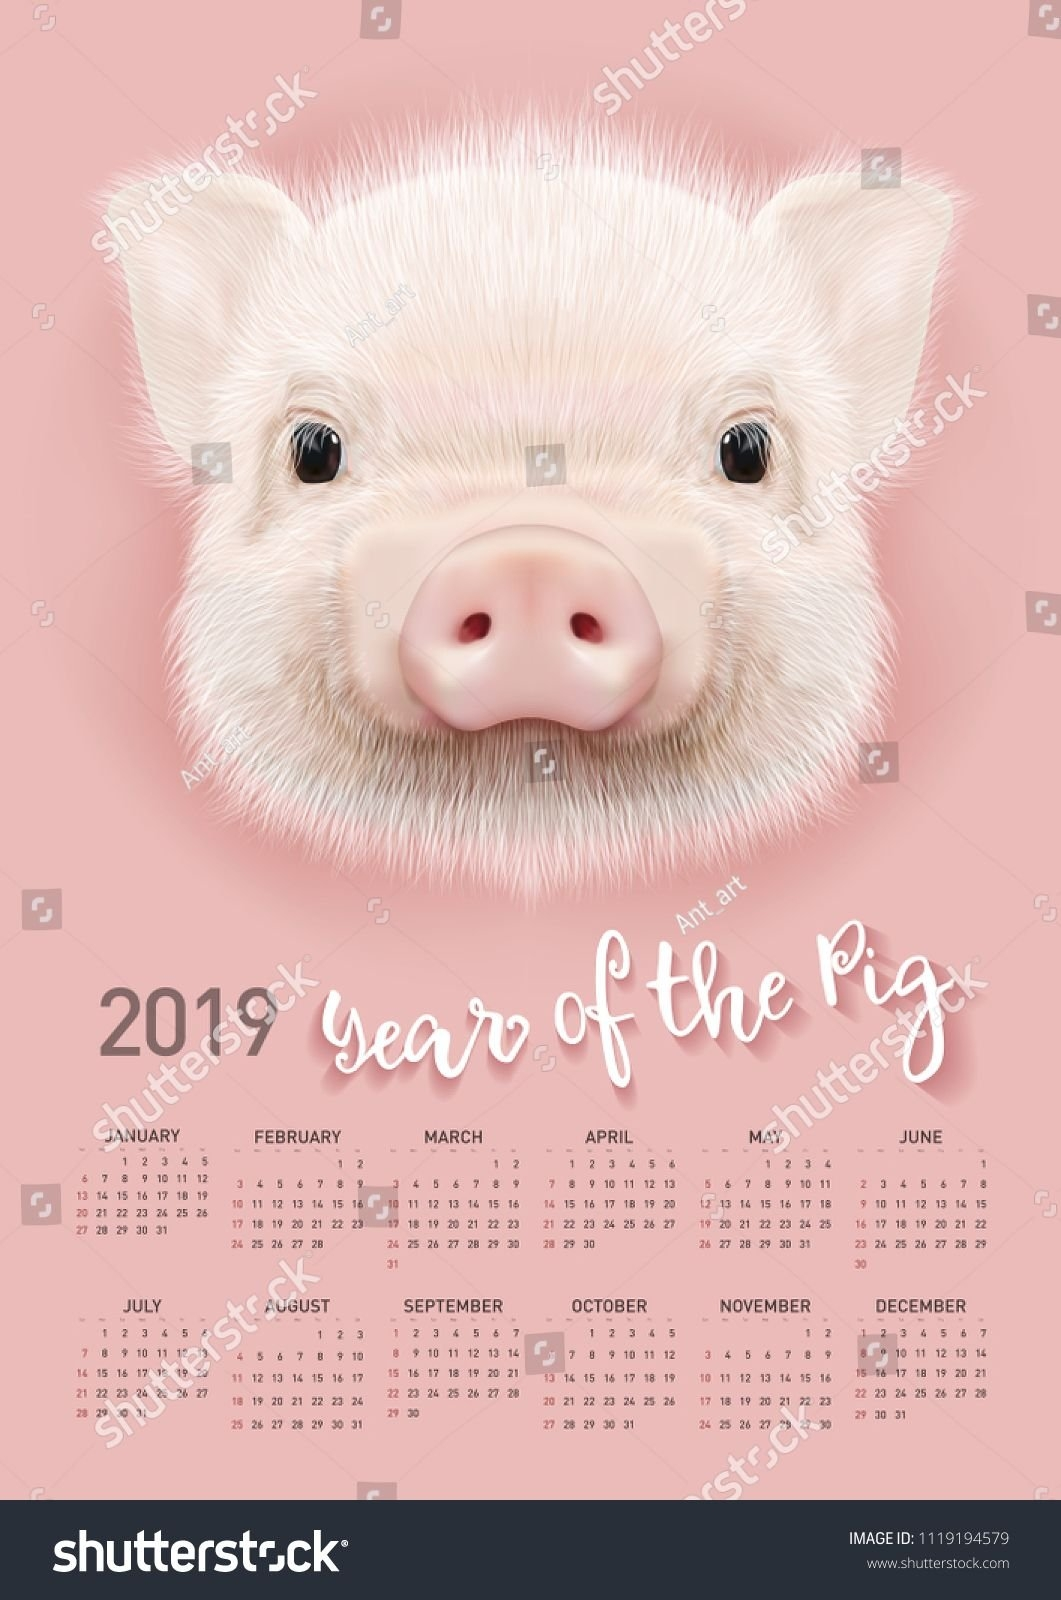 Pig Calendar For 2019. Vector Editable Template With Concept. Symbol Calendar 2019 Year Of The Pig